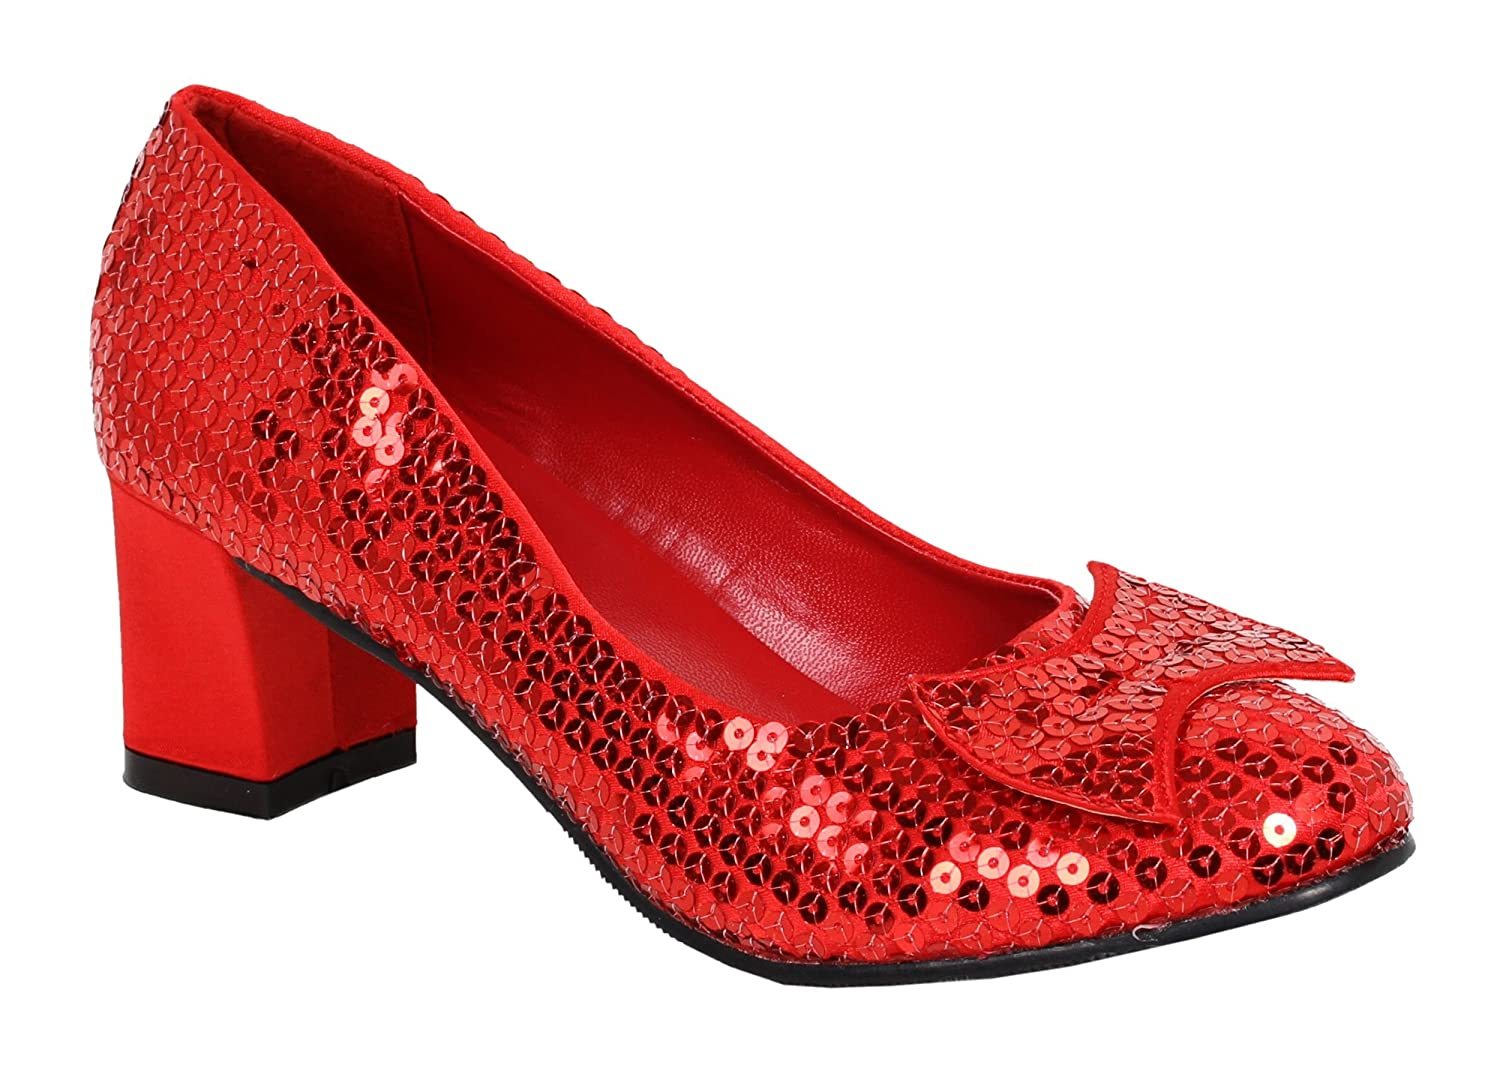 db268cc3d05 Amazon.com  Size 9 - Red Glitter Dorothy Costume Shoe  Shoes